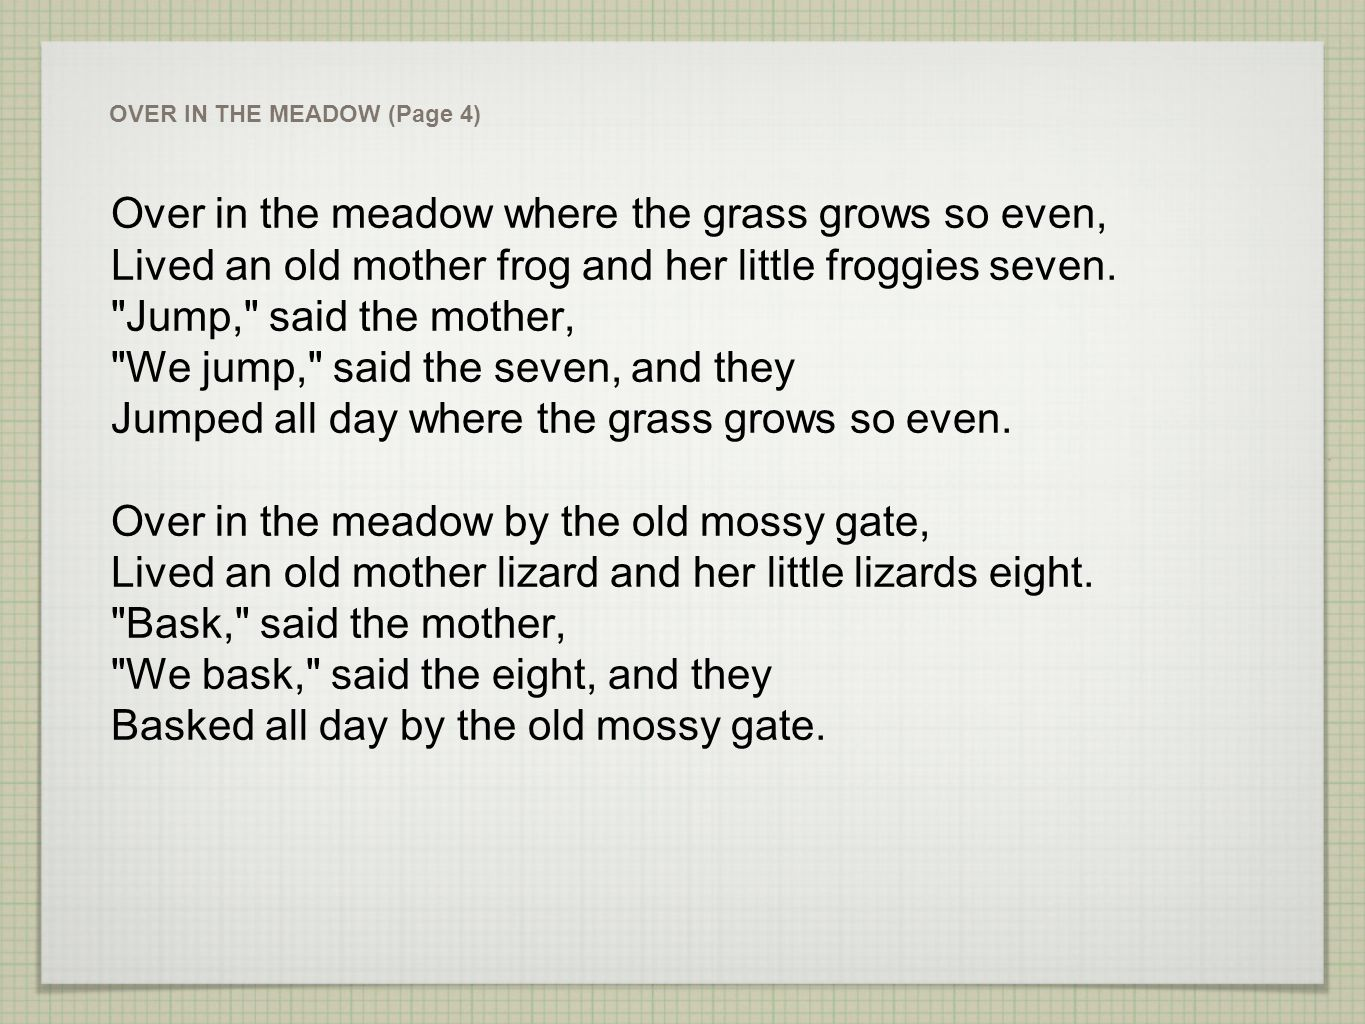 Over in the meadow where the grass grows so even,